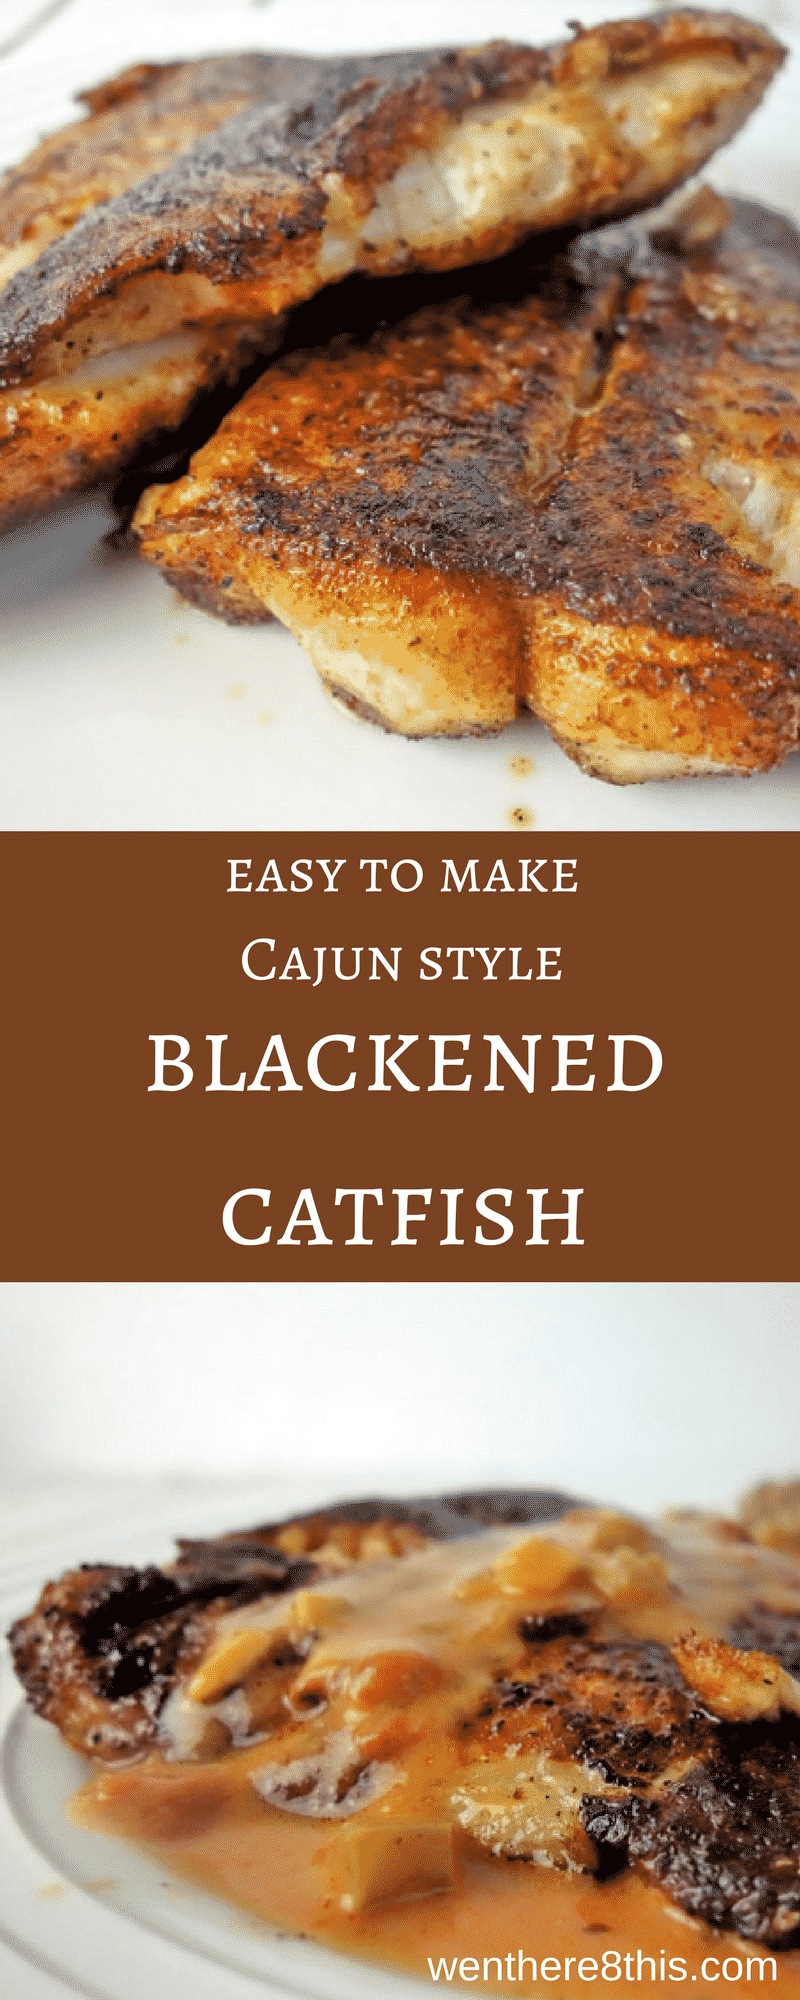 This easy to make Cajun style blackened catfish is seasoned with spicy blackened seasoning and fried in butter, this catfish melts in your mouth!blackened catfish recipe, catfish recipe, blackened catfish easy, fried catfish recipe, fried catfish easy, butter catfish, new Orleans catfish, creole catfish, Cajun catfish, Cajun blackened catfish recipe, Cajun recipes, southern catfish